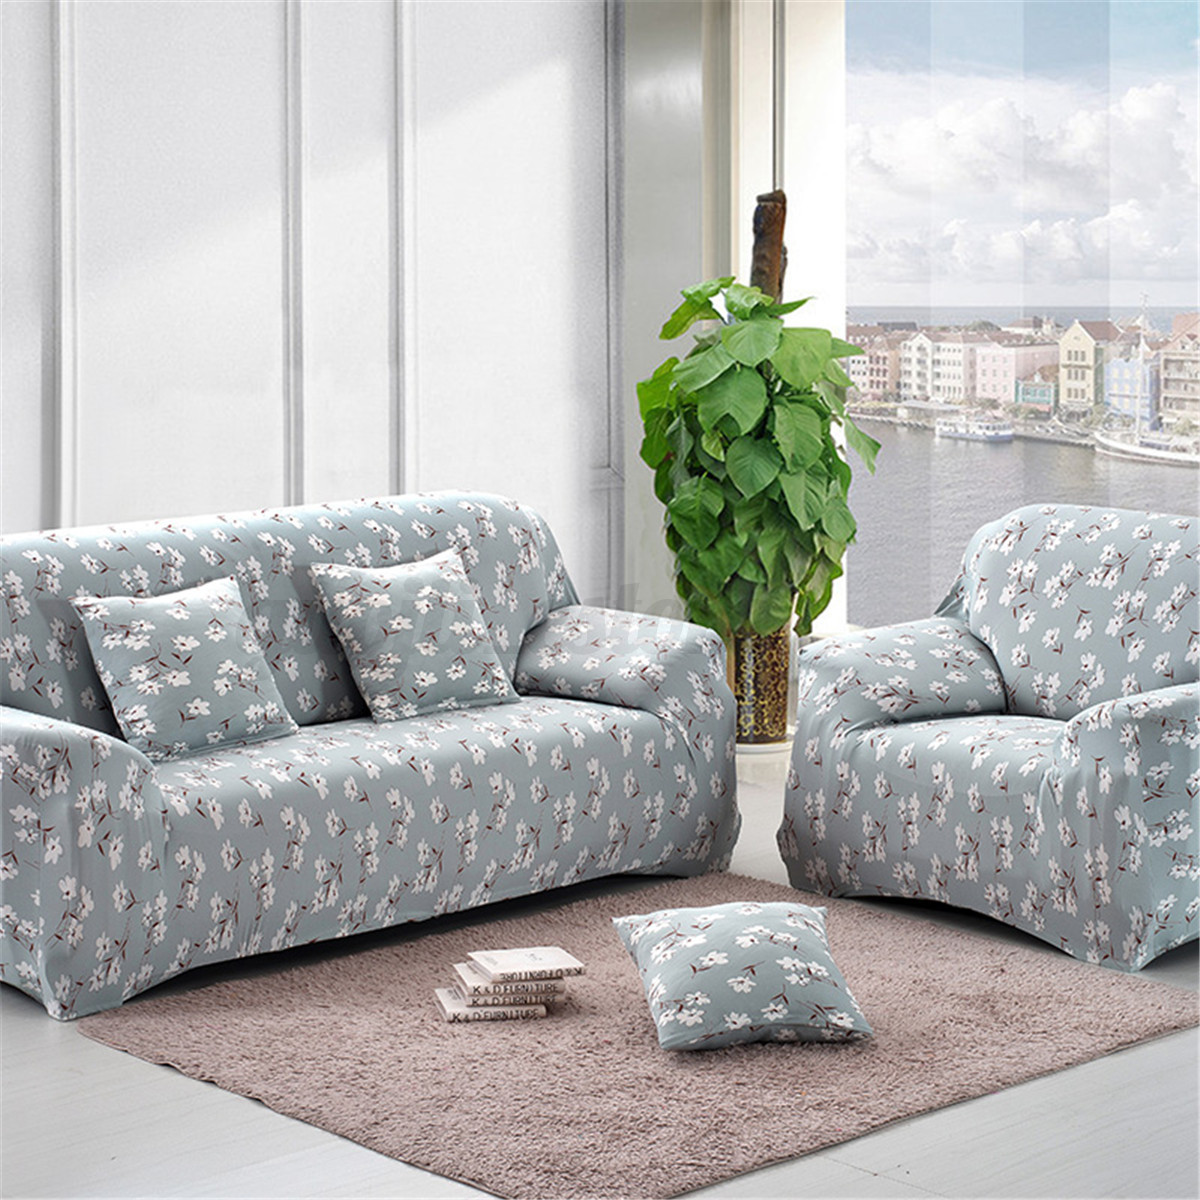 1-2-3-4-Seater-L-Shape-Stretch-Chair-Loveseat-Sofa-Couch-Protect-Cover-Slipcover